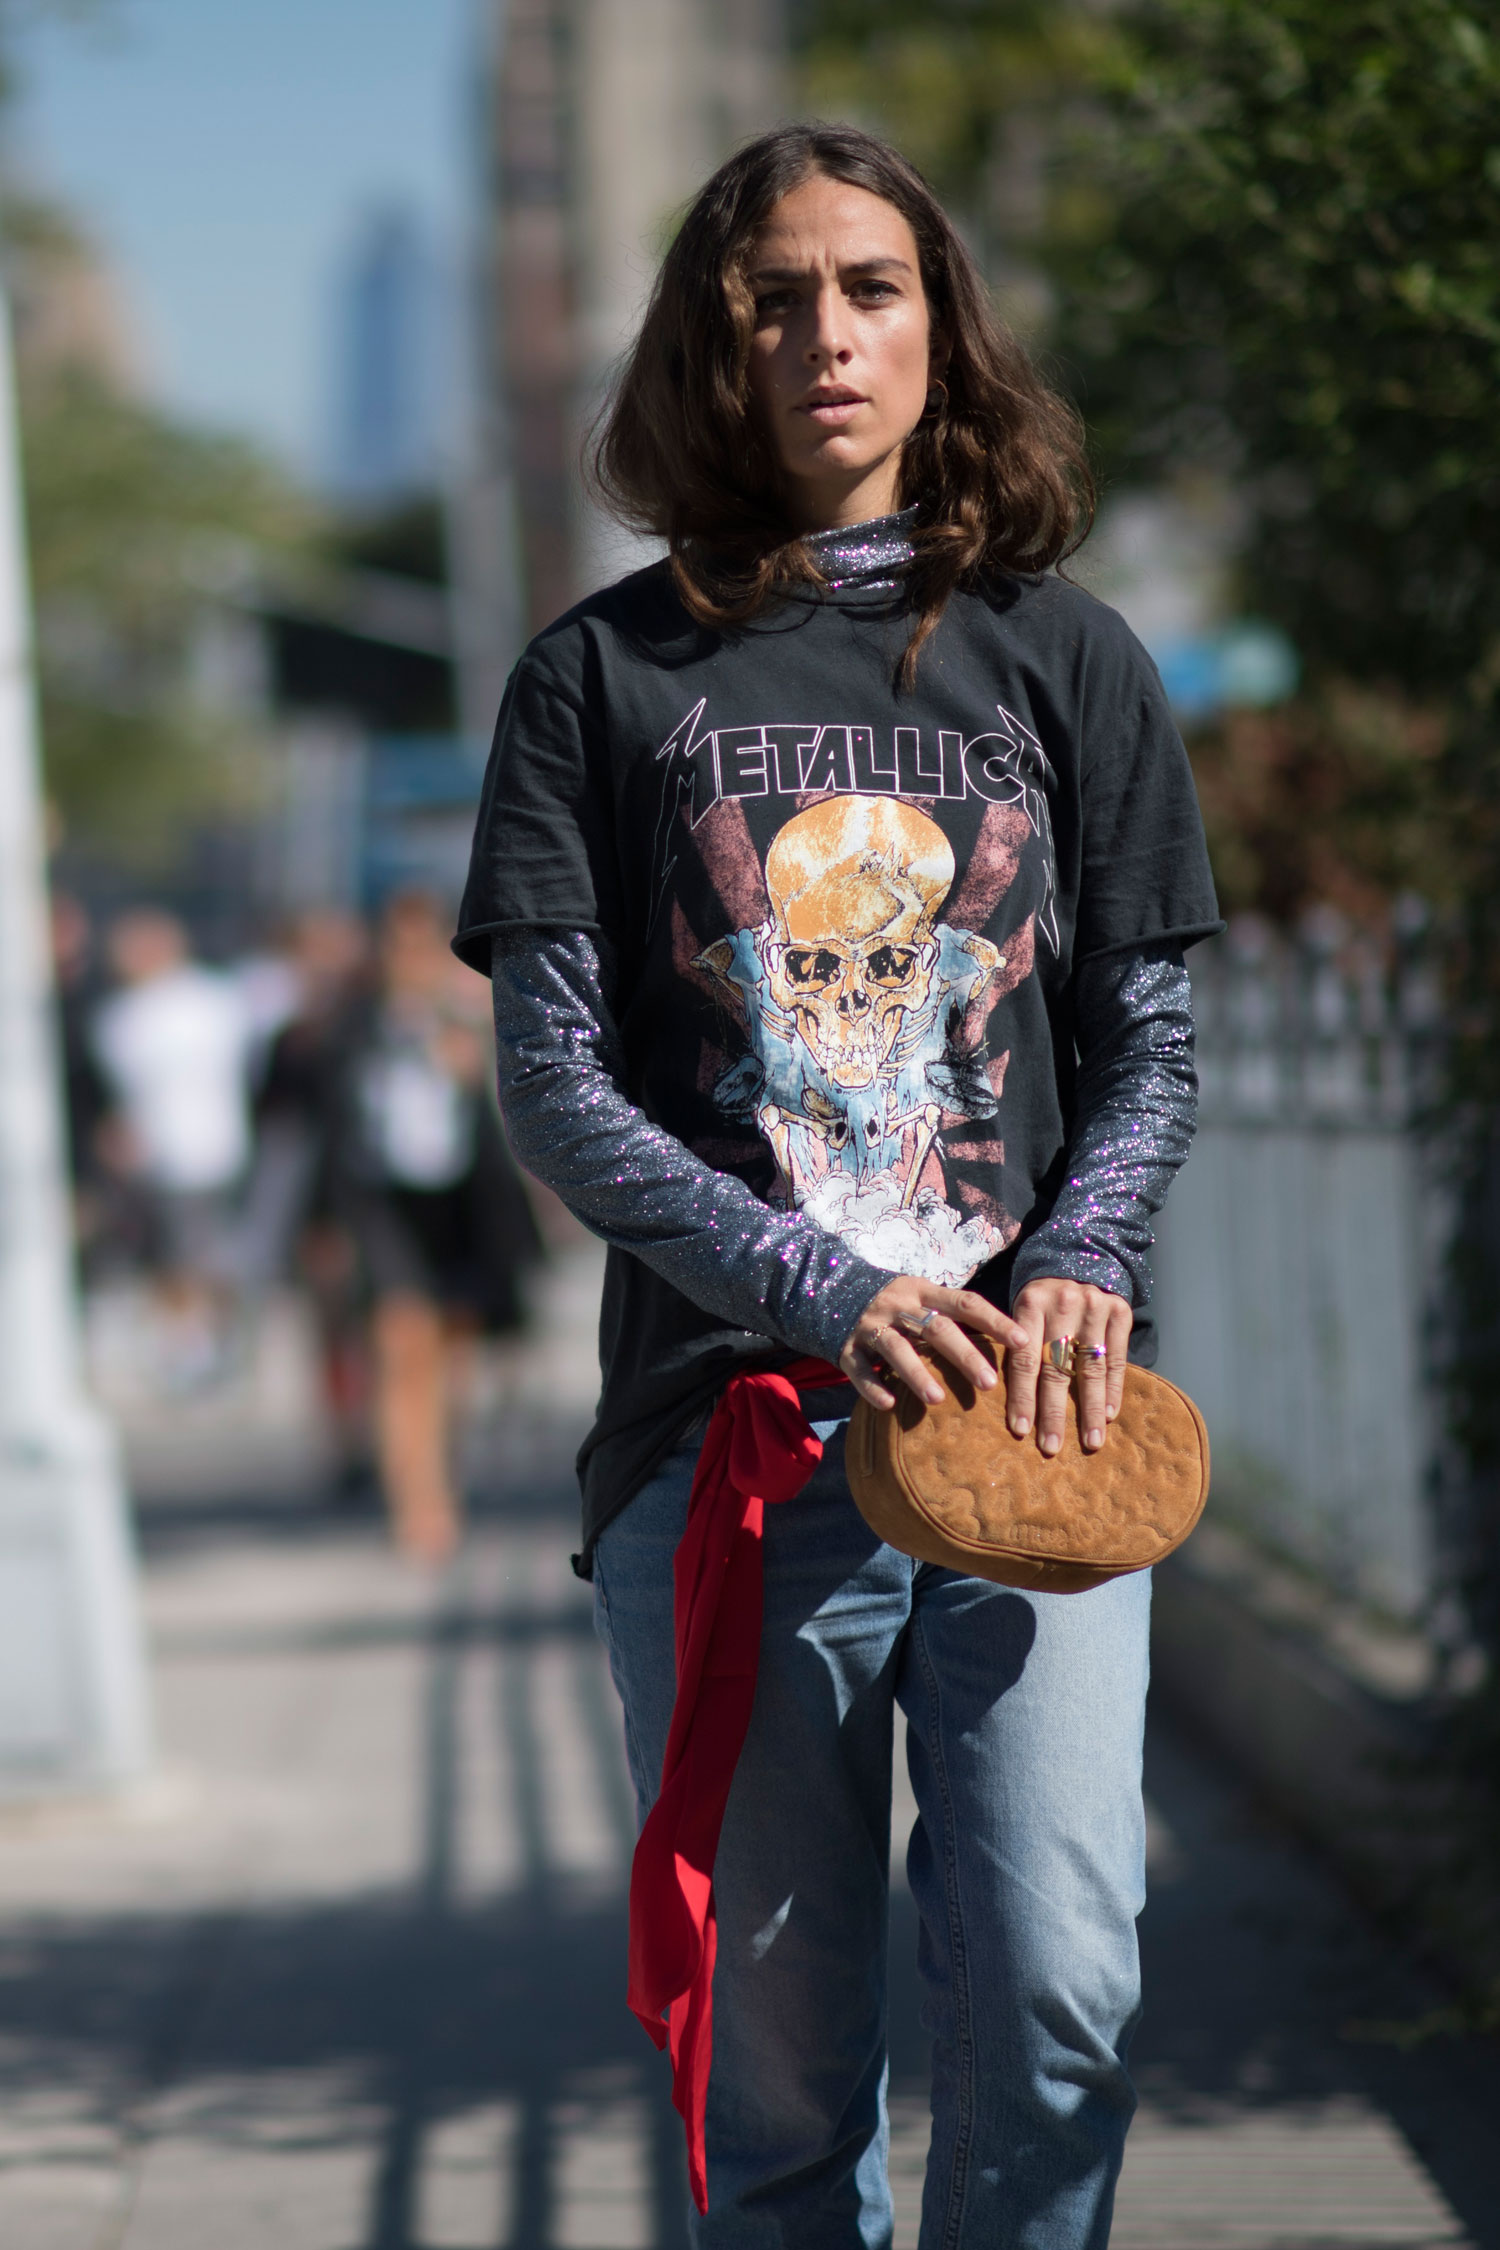 trend-metal-shirt-street-style-04